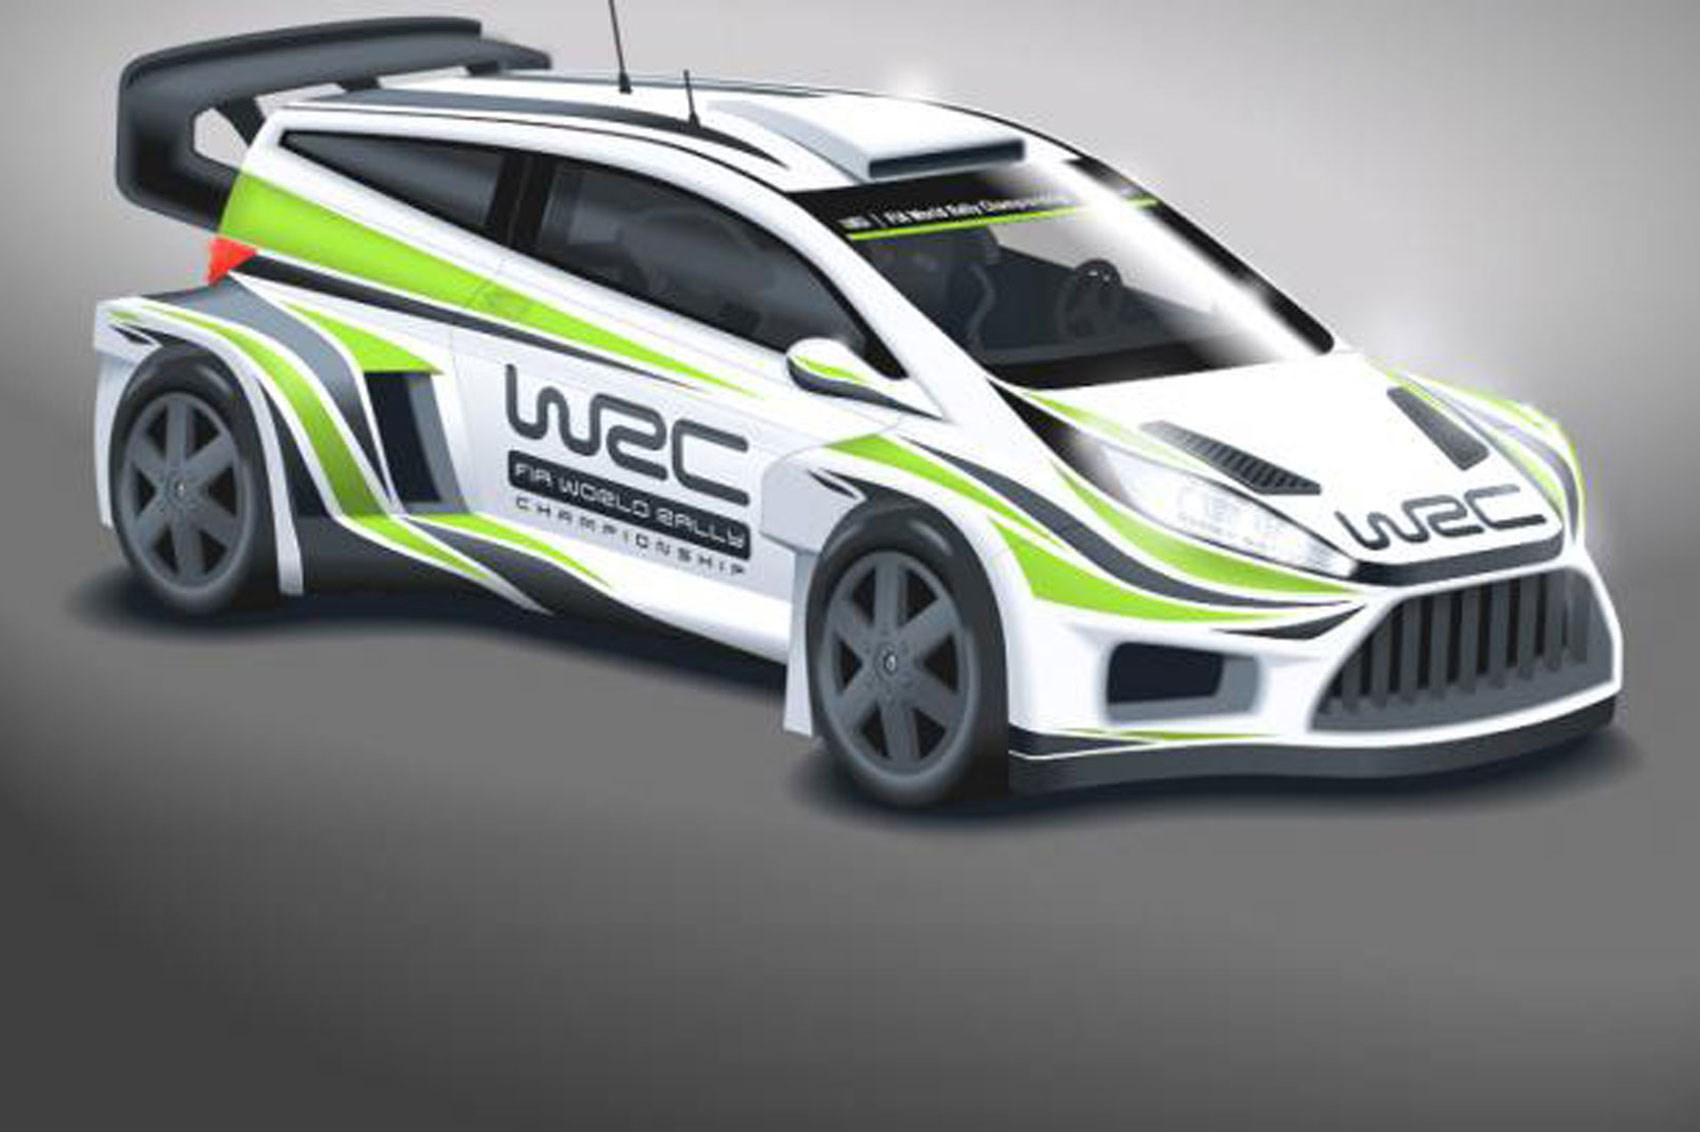 Ultrablogus  Pleasing Wild New Look For Wrc Cars In  By Car Magazine With Remarkable Wrc Cars Will Get Wider Bodies Bigger Wings And More Power For  With Delightful  Mitsubishi Galant Interior Also  Gmc Envoy Interior In Addition Ford Econoline Interior And  Cadillac Cts Interior As Well As Nissan Sentra  Interior Additionally Audi Tt  Interior From Carmagazinecouk With Ultrablogus  Remarkable Wild New Look For Wrc Cars In  By Car Magazine With Delightful Wrc Cars Will Get Wider Bodies Bigger Wings And More Power For  And Pleasing  Mitsubishi Galant Interior Also  Gmc Envoy Interior In Addition Ford Econoline Interior From Carmagazinecouk